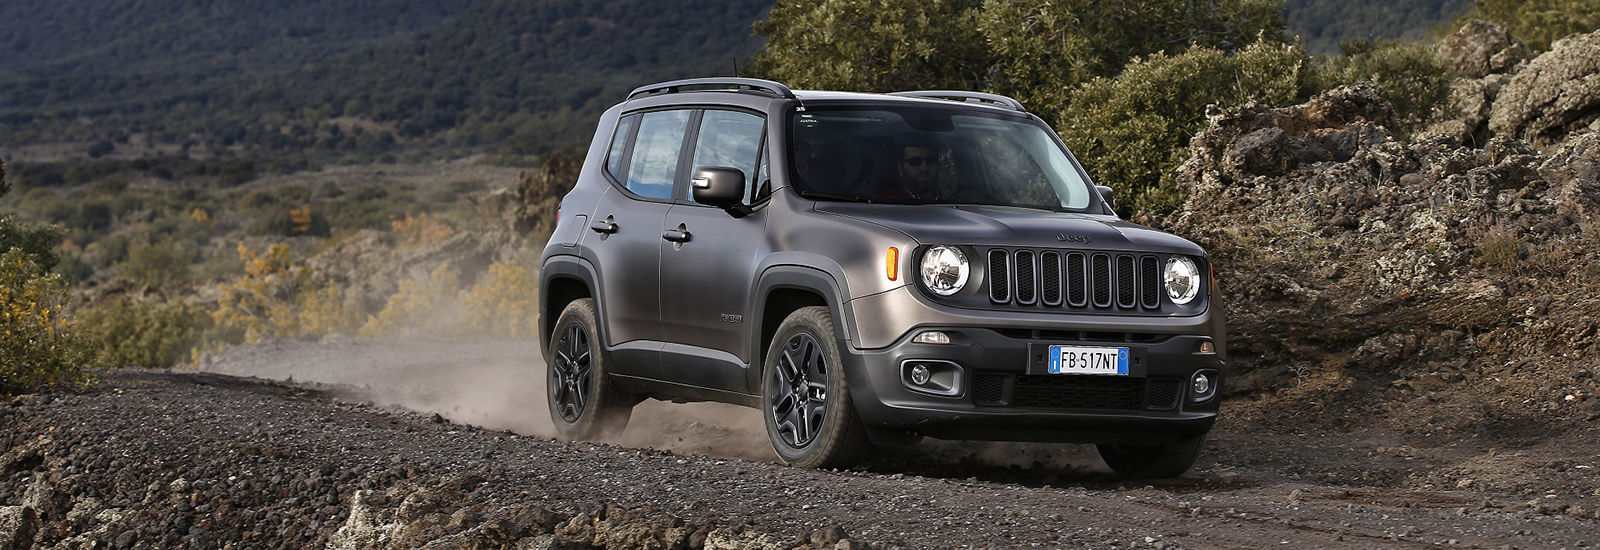 Jeep Renegade Night Eagle What You Need To Know Carwow